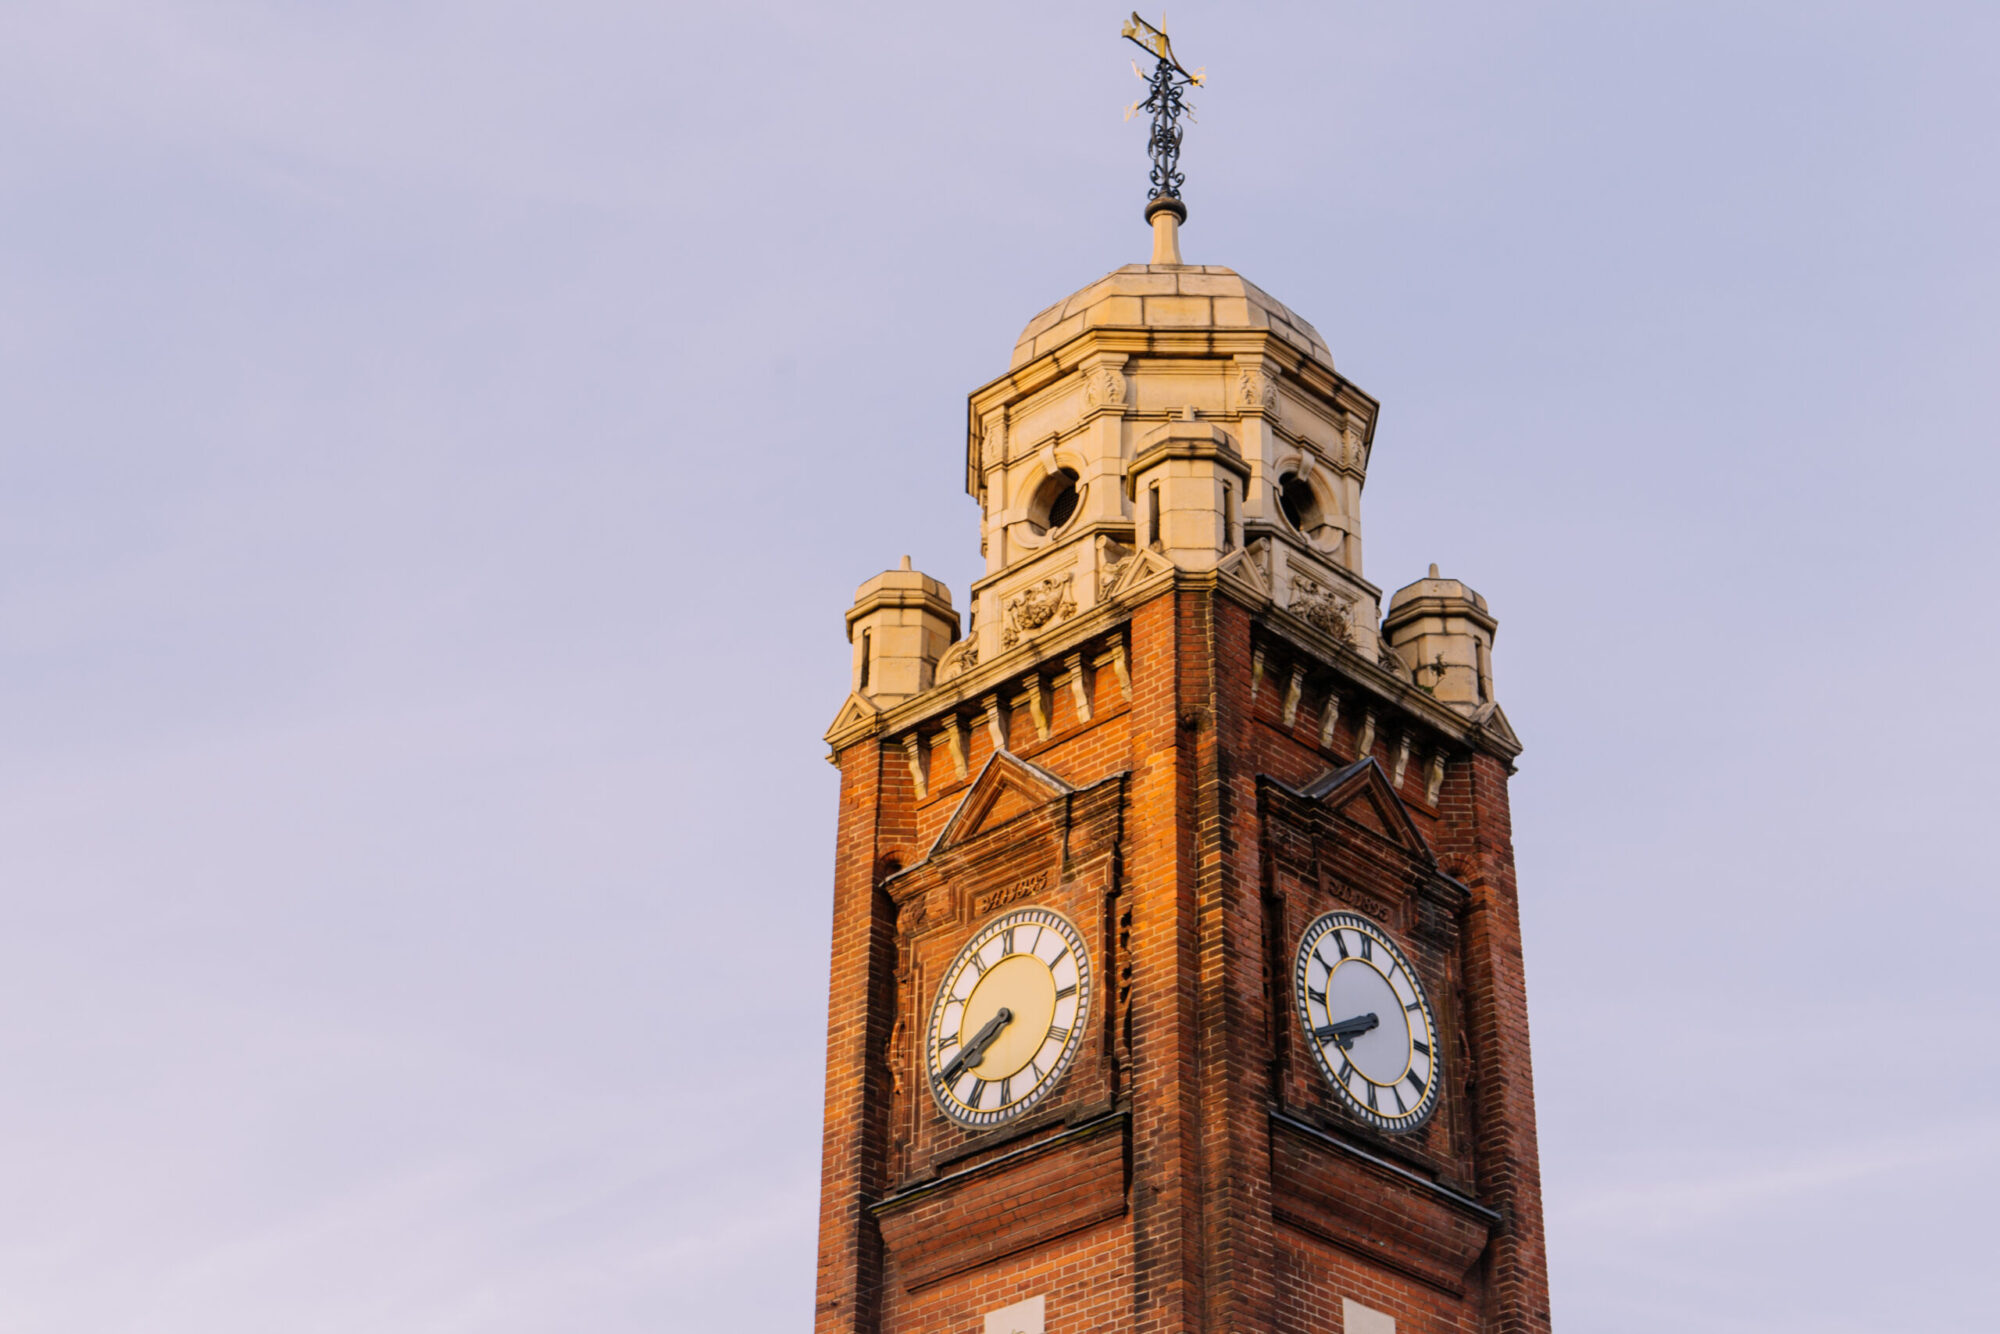 The Crouch End clock tower